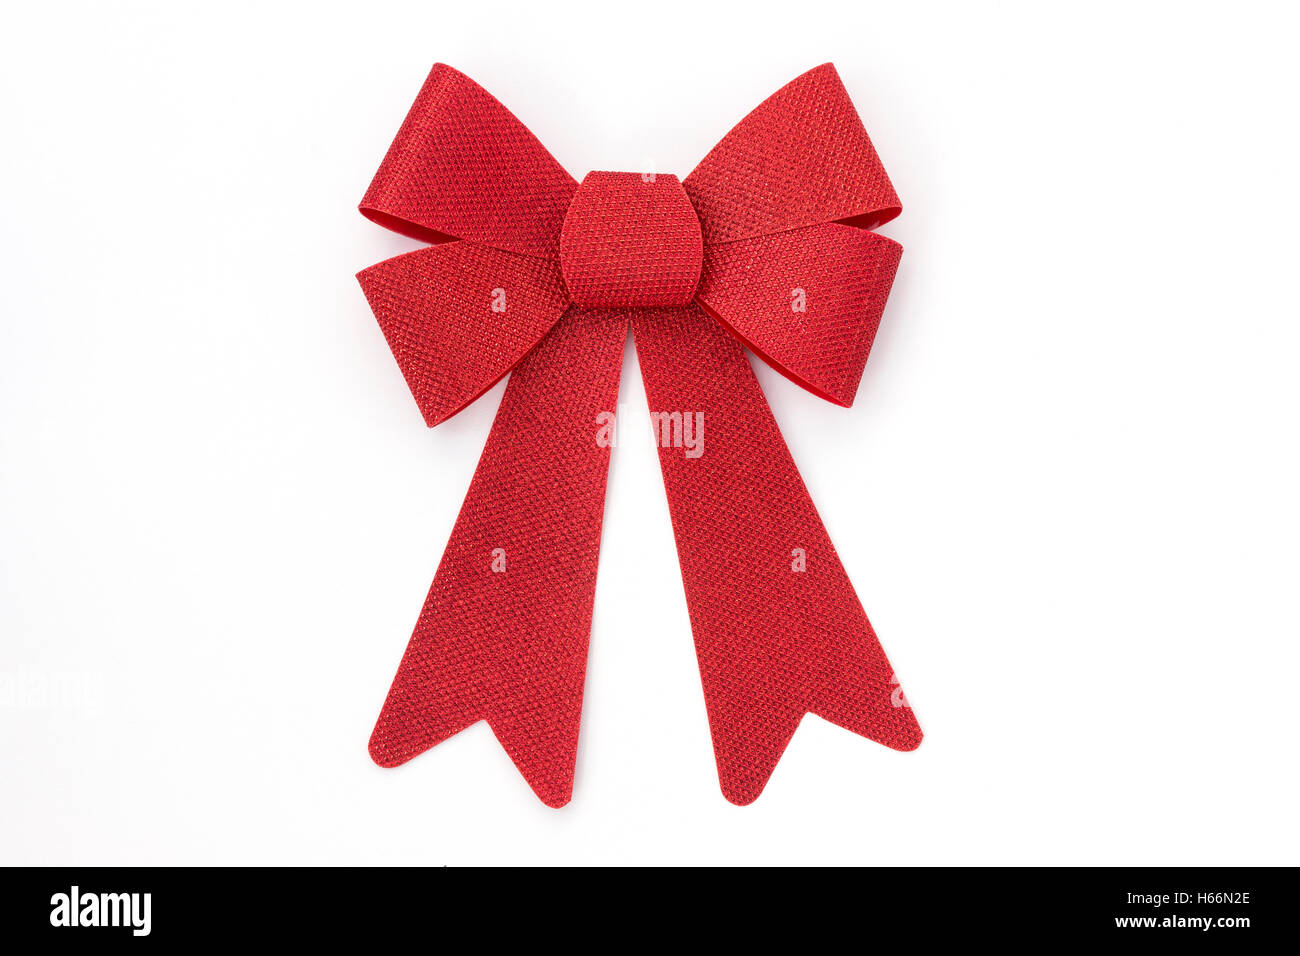 Shiny red Christmas holiday bow isolated on white background, graphic resource - Stock Image